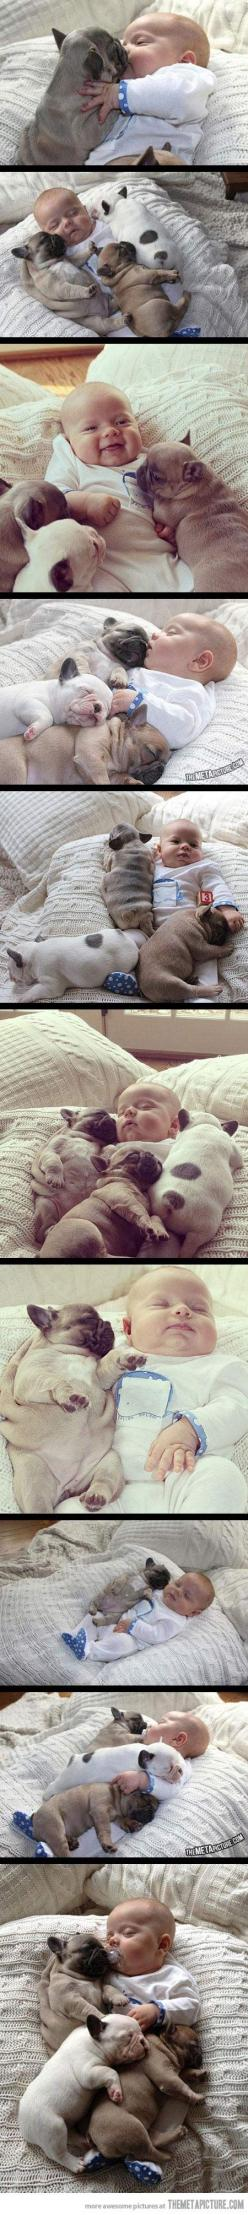 Awww so cute: Cuteness Overload, French Bulldogs, My Heart, Puppy, Baby, Animal